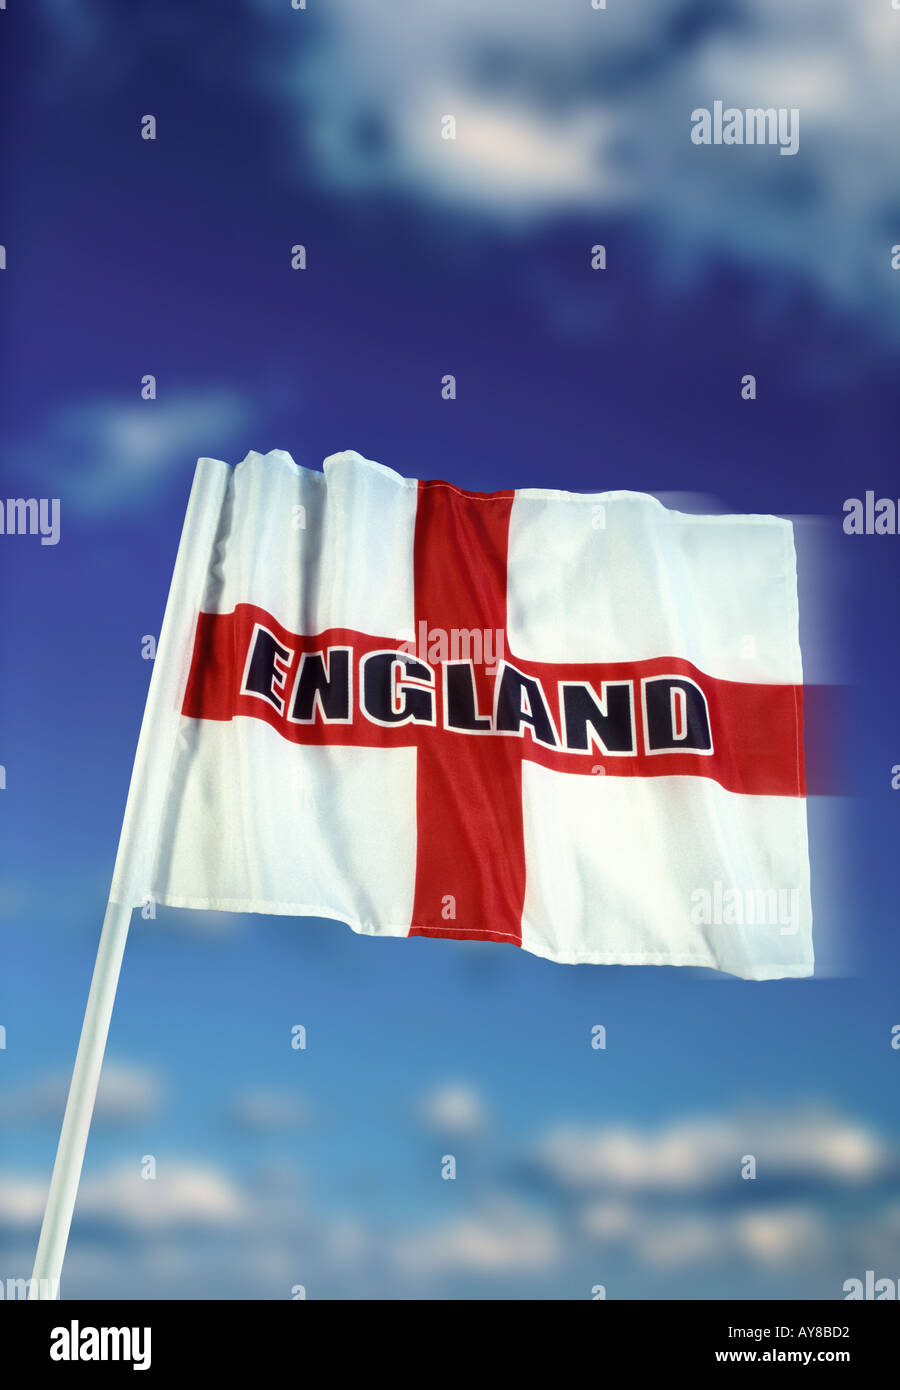 English Cross Saint George Flag Stockfotos & English Cross Saint ...